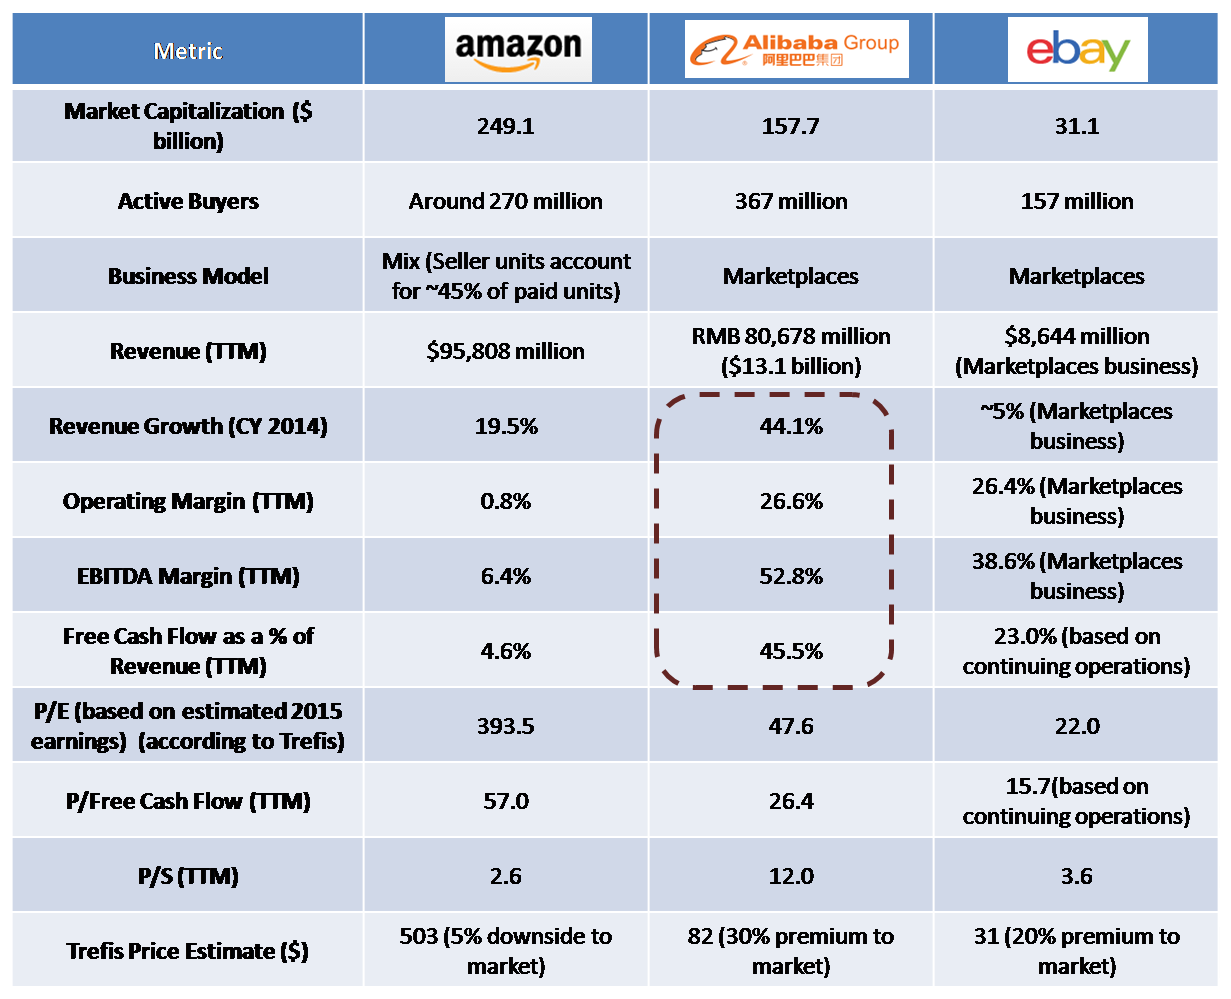 compare alibaba ebay amazon commerce